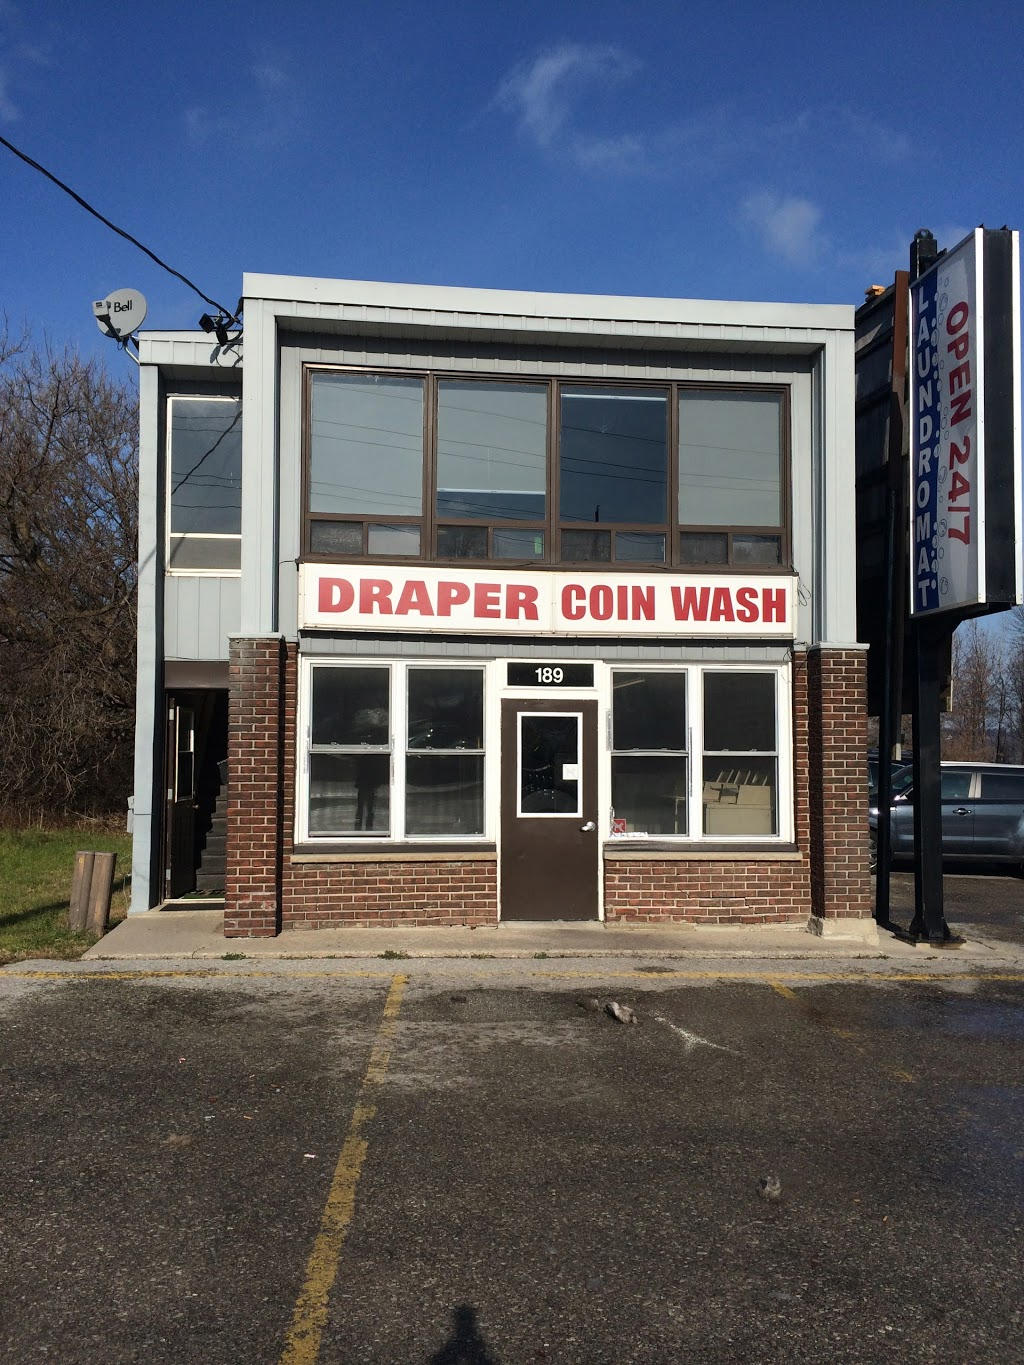 Draper Coin Wash | laundry | 189 Burton Ave, Barrie, ON L4N 2R9, Canada | 7053318586 OR +1 705-331-8586